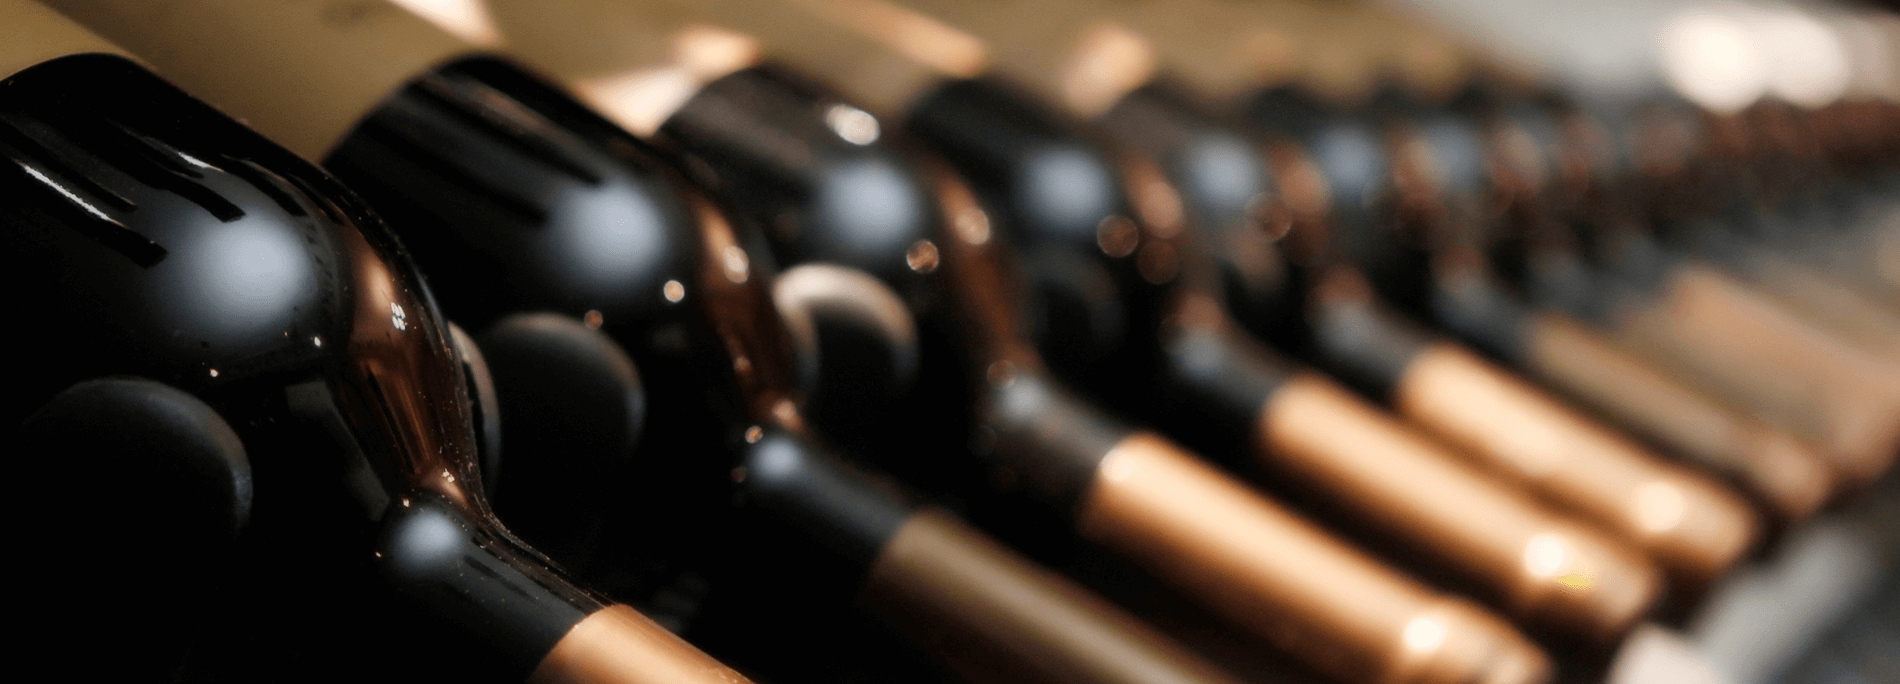 Exquisite Wines